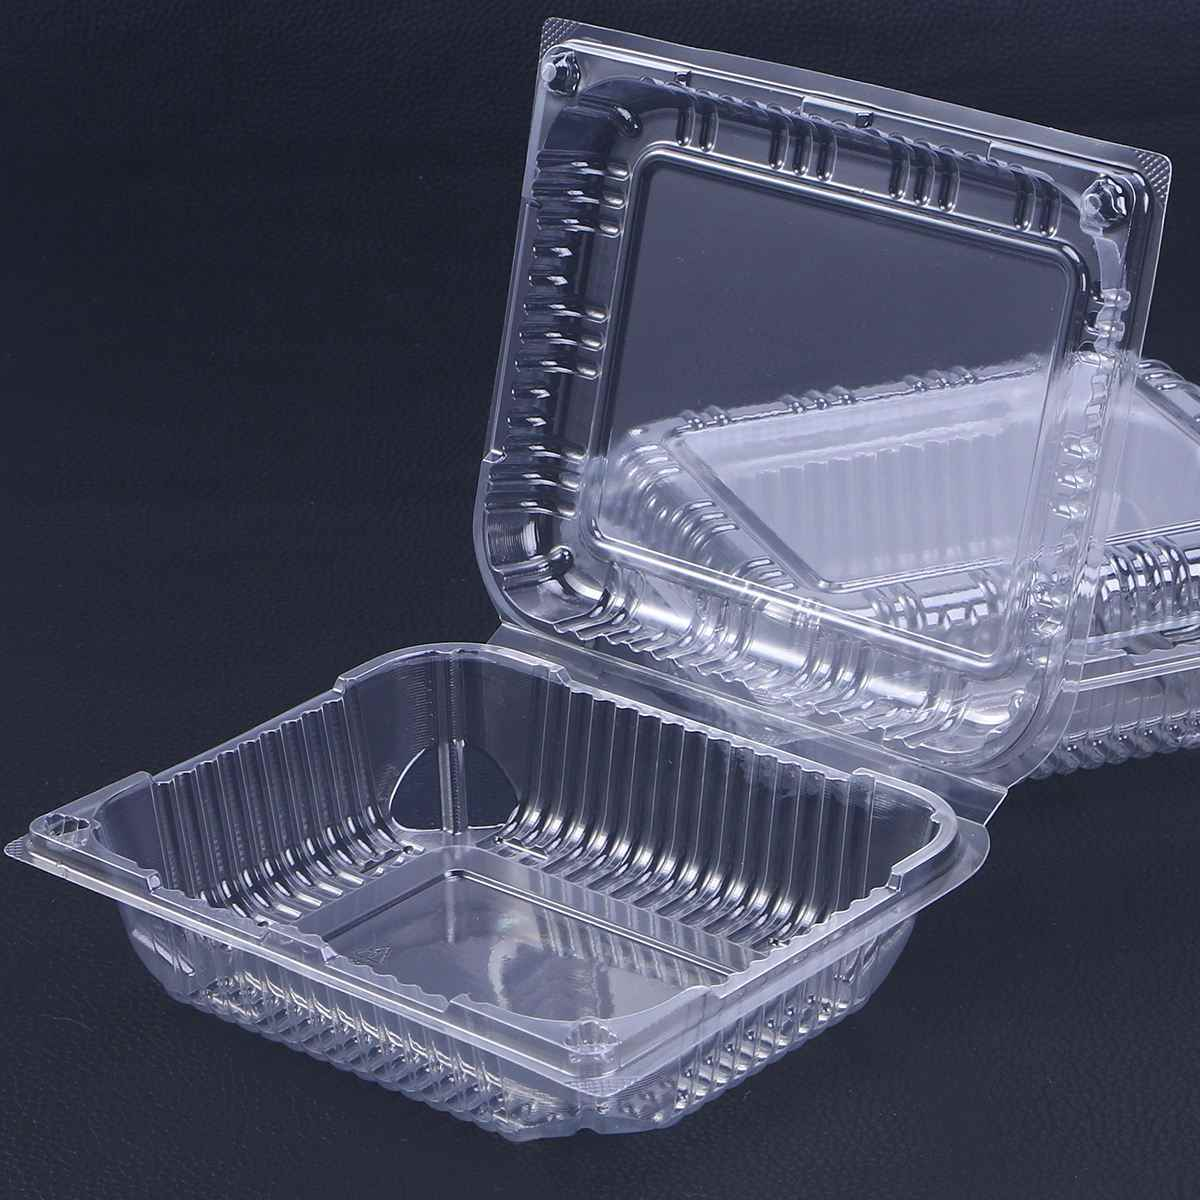 30pcs Disposable Box Transparent Hinged Lid Plastic Takeout Food Containers For Desserts Fruits Vegetables - 17.5x14.3x6cm